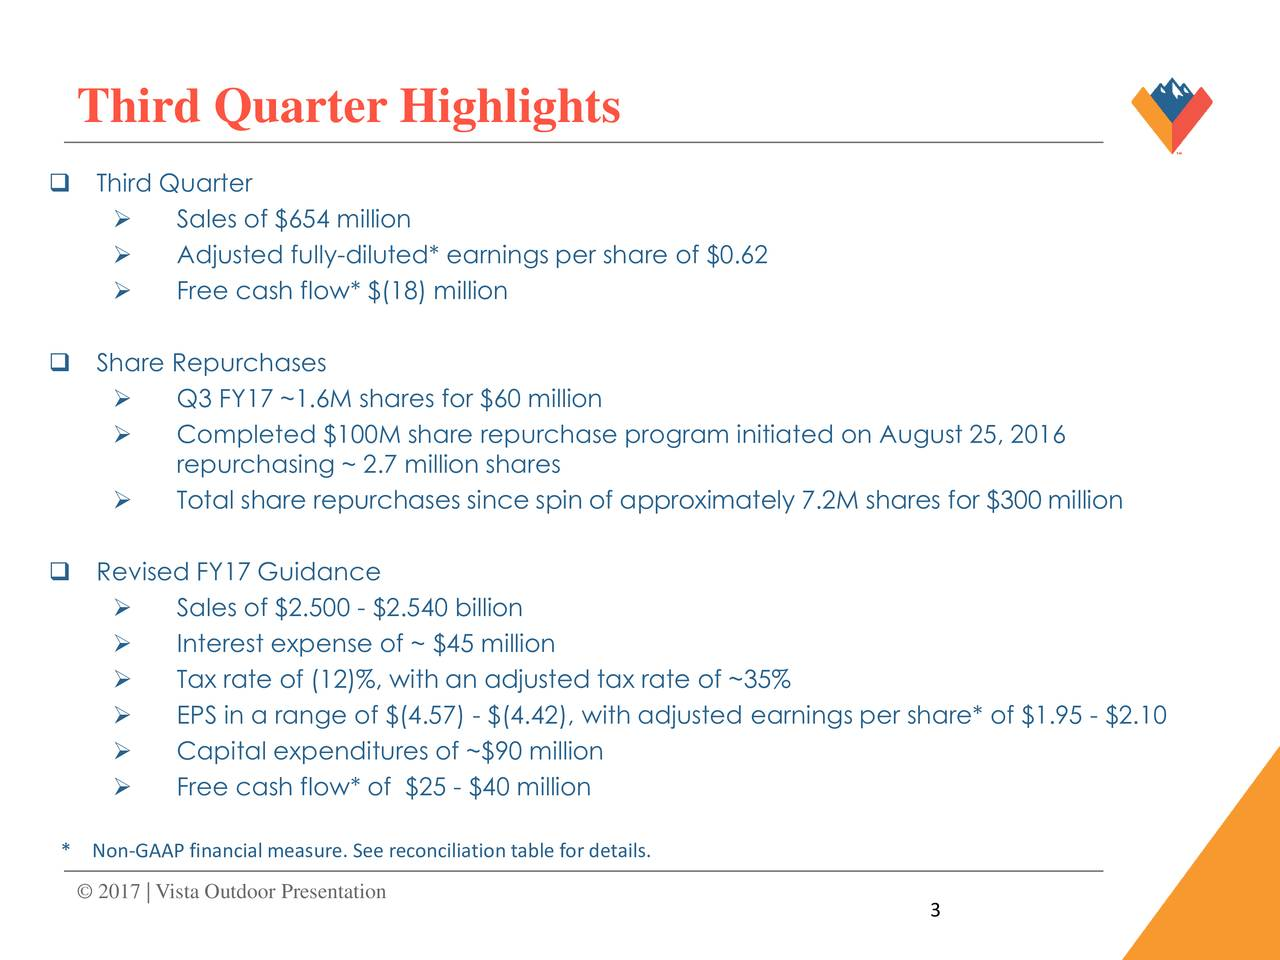 Third Quarter Sales of $654 million Adjusted fully-diluted* earnings per share of $0.62 Free cash flow* $(18) million Share Repurchases Q3 FY17 ~1.6M shares for $60 million Completed $100M share repurchase program initiated on August 25, 2016 repurchasing ~ 2.7 million shares Total share repurchases since spin of approximately 7.2M shares for $300 million Revised FY17 Guidance Sales of $2.500 - $2.540 billion Interest expense of ~ $45 million Tax rate of (12)%, with an adjusted tax rate of ~35% EPS in a range of $(4.57) - $(4.42), with adjusted earnings per share* of $1.95 - $2.10 Capital expenditures of ~$90 million Free cash flow* of $25 - $40 million * Non-GAAP financial measure. See reconciliation table for details. 2017 | Vista Outdoor Presentation 3